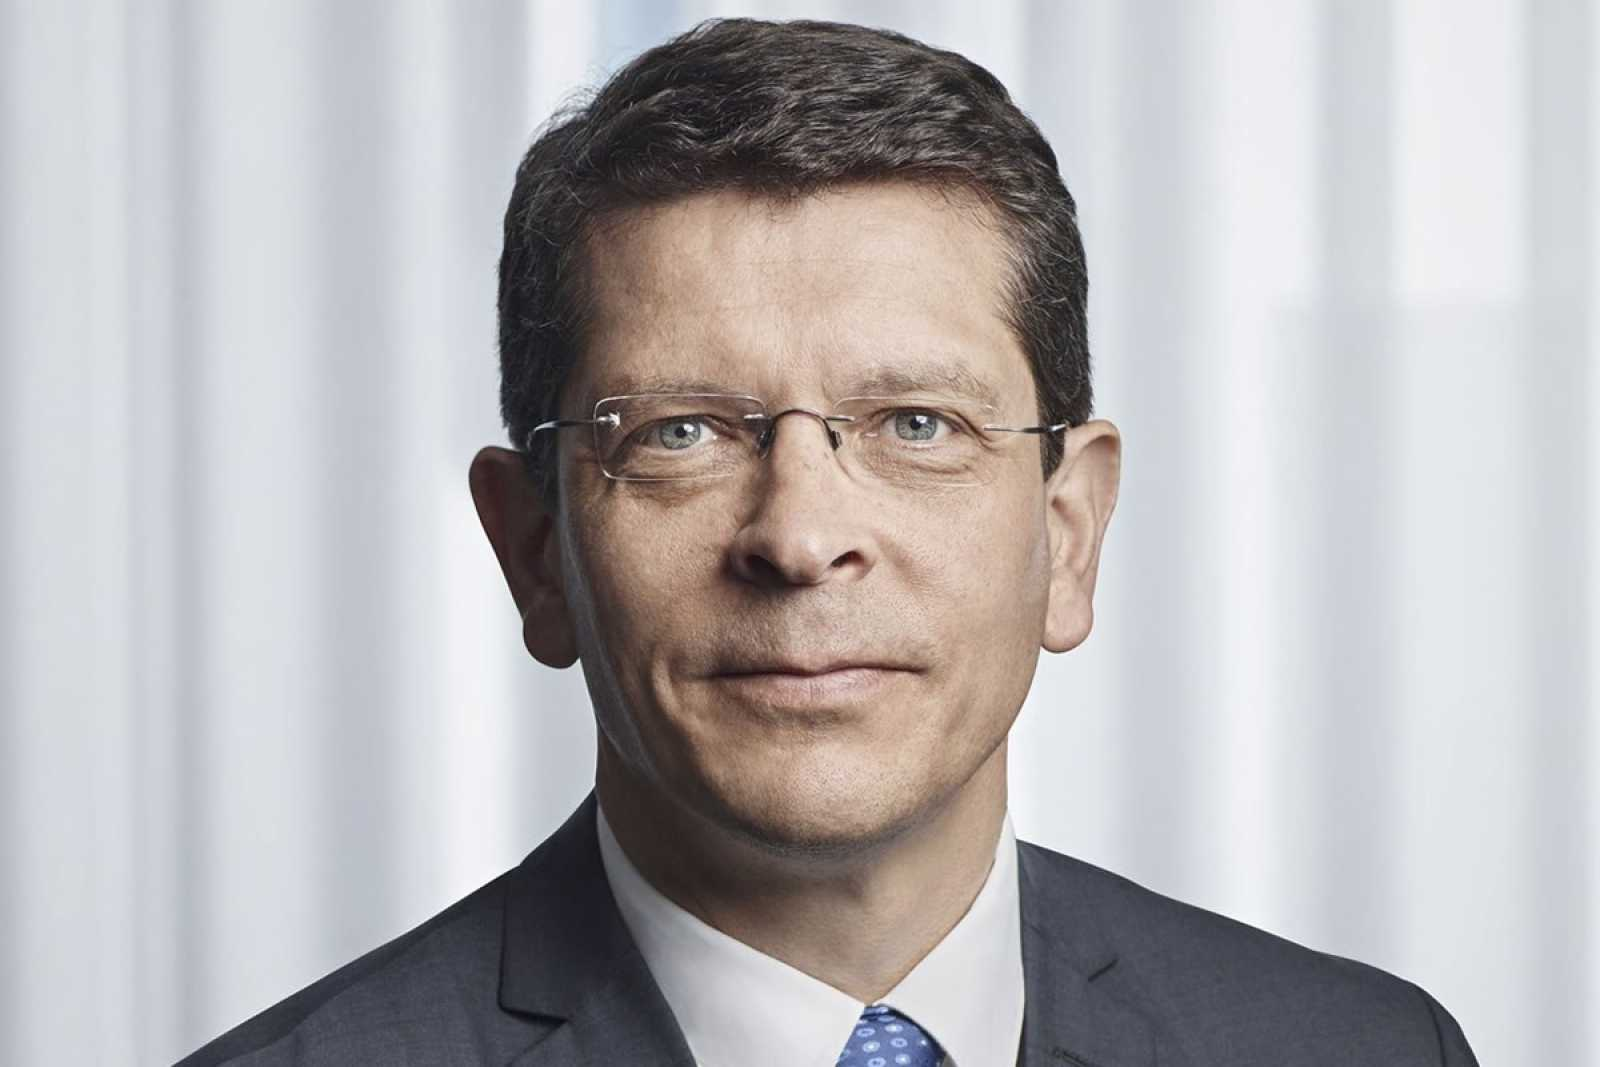 Geir-Håøy-President-and-Chief-Executive-Officer-KONGSBERG-Nor-Shipping-pic-March-2019